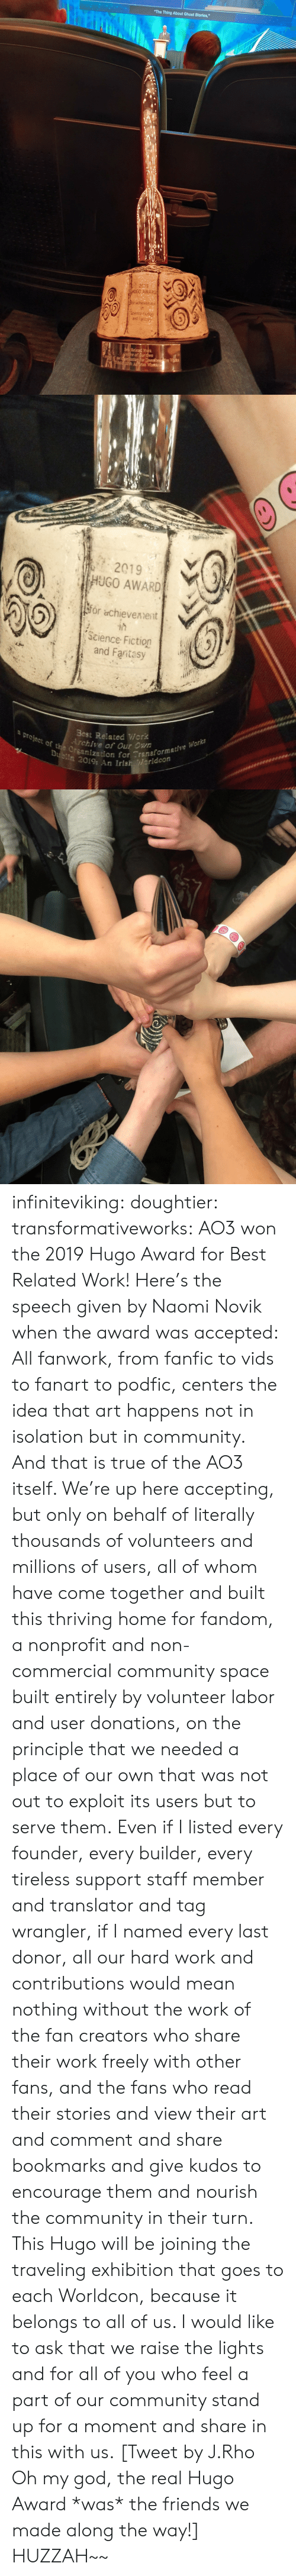 "Community, Fanta, and Friends: The Thing About Ghost Stories,""  2019  HUGO AWARD  Sor achieventt  Soence Fiction  and Fanta  BeRelate Wark  Aedre of Cur Own  arlketion for 1ransformacive Wcks  OA Kelsh Workde   a  2019  HUGO AWARD  or achievennent  (Science Fiction  and Faritasy  a project of the Organization for Transformative Works  Dubiln 2019: An Irish eridcon  Best Related Work  Archive of Our Own infiniteviking: doughtier:  transformativeworks:  AO3 won the 2019 Hugo Award for Best Related Work! Here's the speech given by Naomi Novik when the award was accepted:  All fanwork, from fanfic to vids to fanart to podfic, centers the idea that art happens not in isolation but in community. And that is true of the AO3 itself. We're up here accepting, but only on behalf of literally thousands of volunteers and millions of users, all of whom have come together and built this thriving home for fandom, a nonprofit and non-commercial community space built entirely by volunteer labor and user donations, on the principle that we needed a place of our own that was not out to exploit its users but to serve them. Even if I listed every founder, every builder, every tireless support staff member and translator and tag wrangler, if I named every last donor, all our hard work and contributions would mean nothing without the work of the fan creators who share their work freely with other fans, and the fans who read their stories and view their art and comment and share bookmarks and give kudos to encourage them and nourish the community in their turn. This Hugo will be joining the traveling exhibition that goes to each Worldcon, because it belongs to all of us. I would like to ask that we raise the lights and for all of you who feel a part of our community stand up for a moment and share in this with us.   [Tweet by J.Rho Oh my god, the real Hugo Award *was* the friends we made along the way!]  HUZZAH~~"